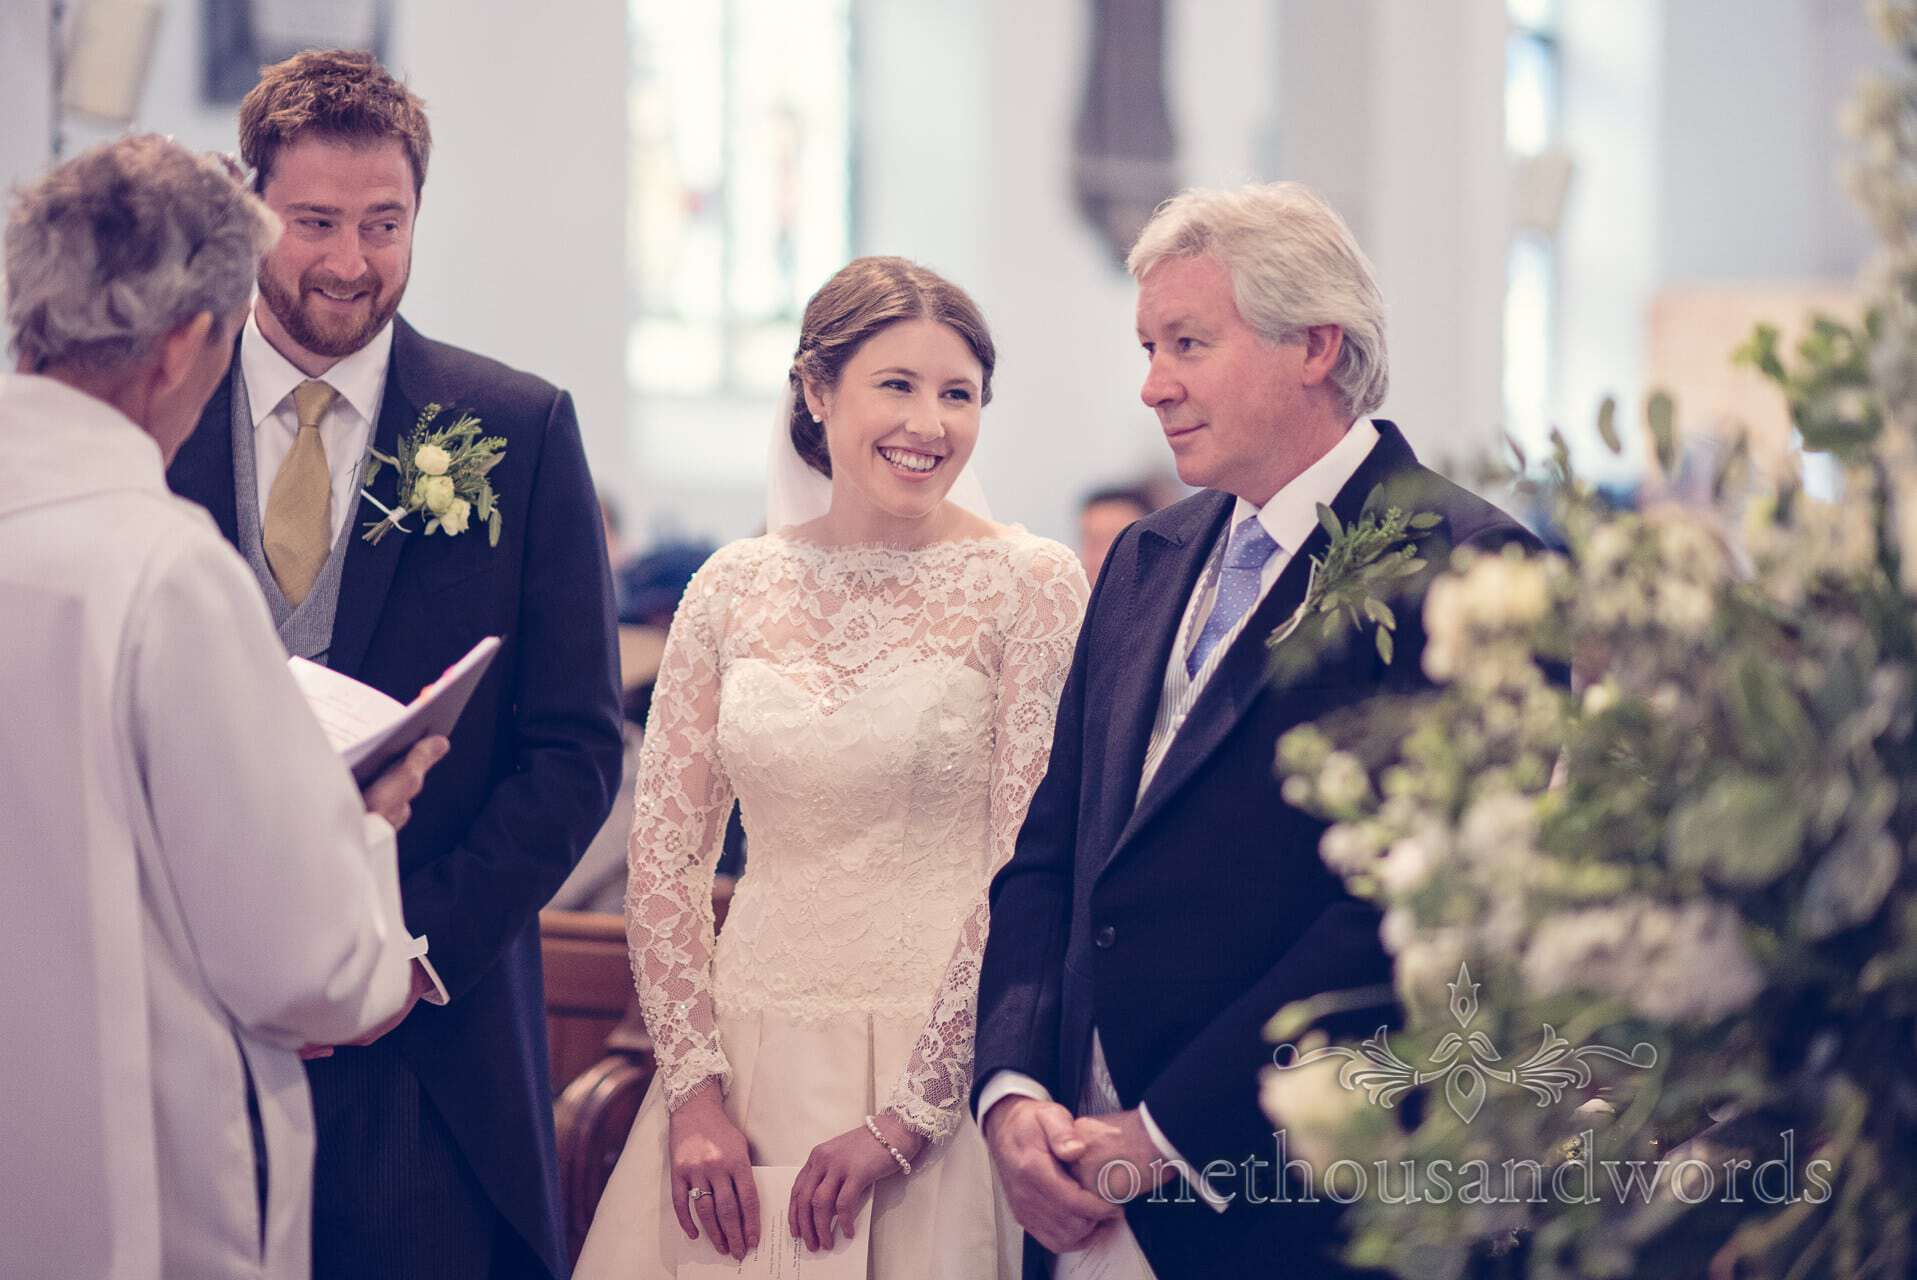 Bride is 'given away' by her father during church wedding service